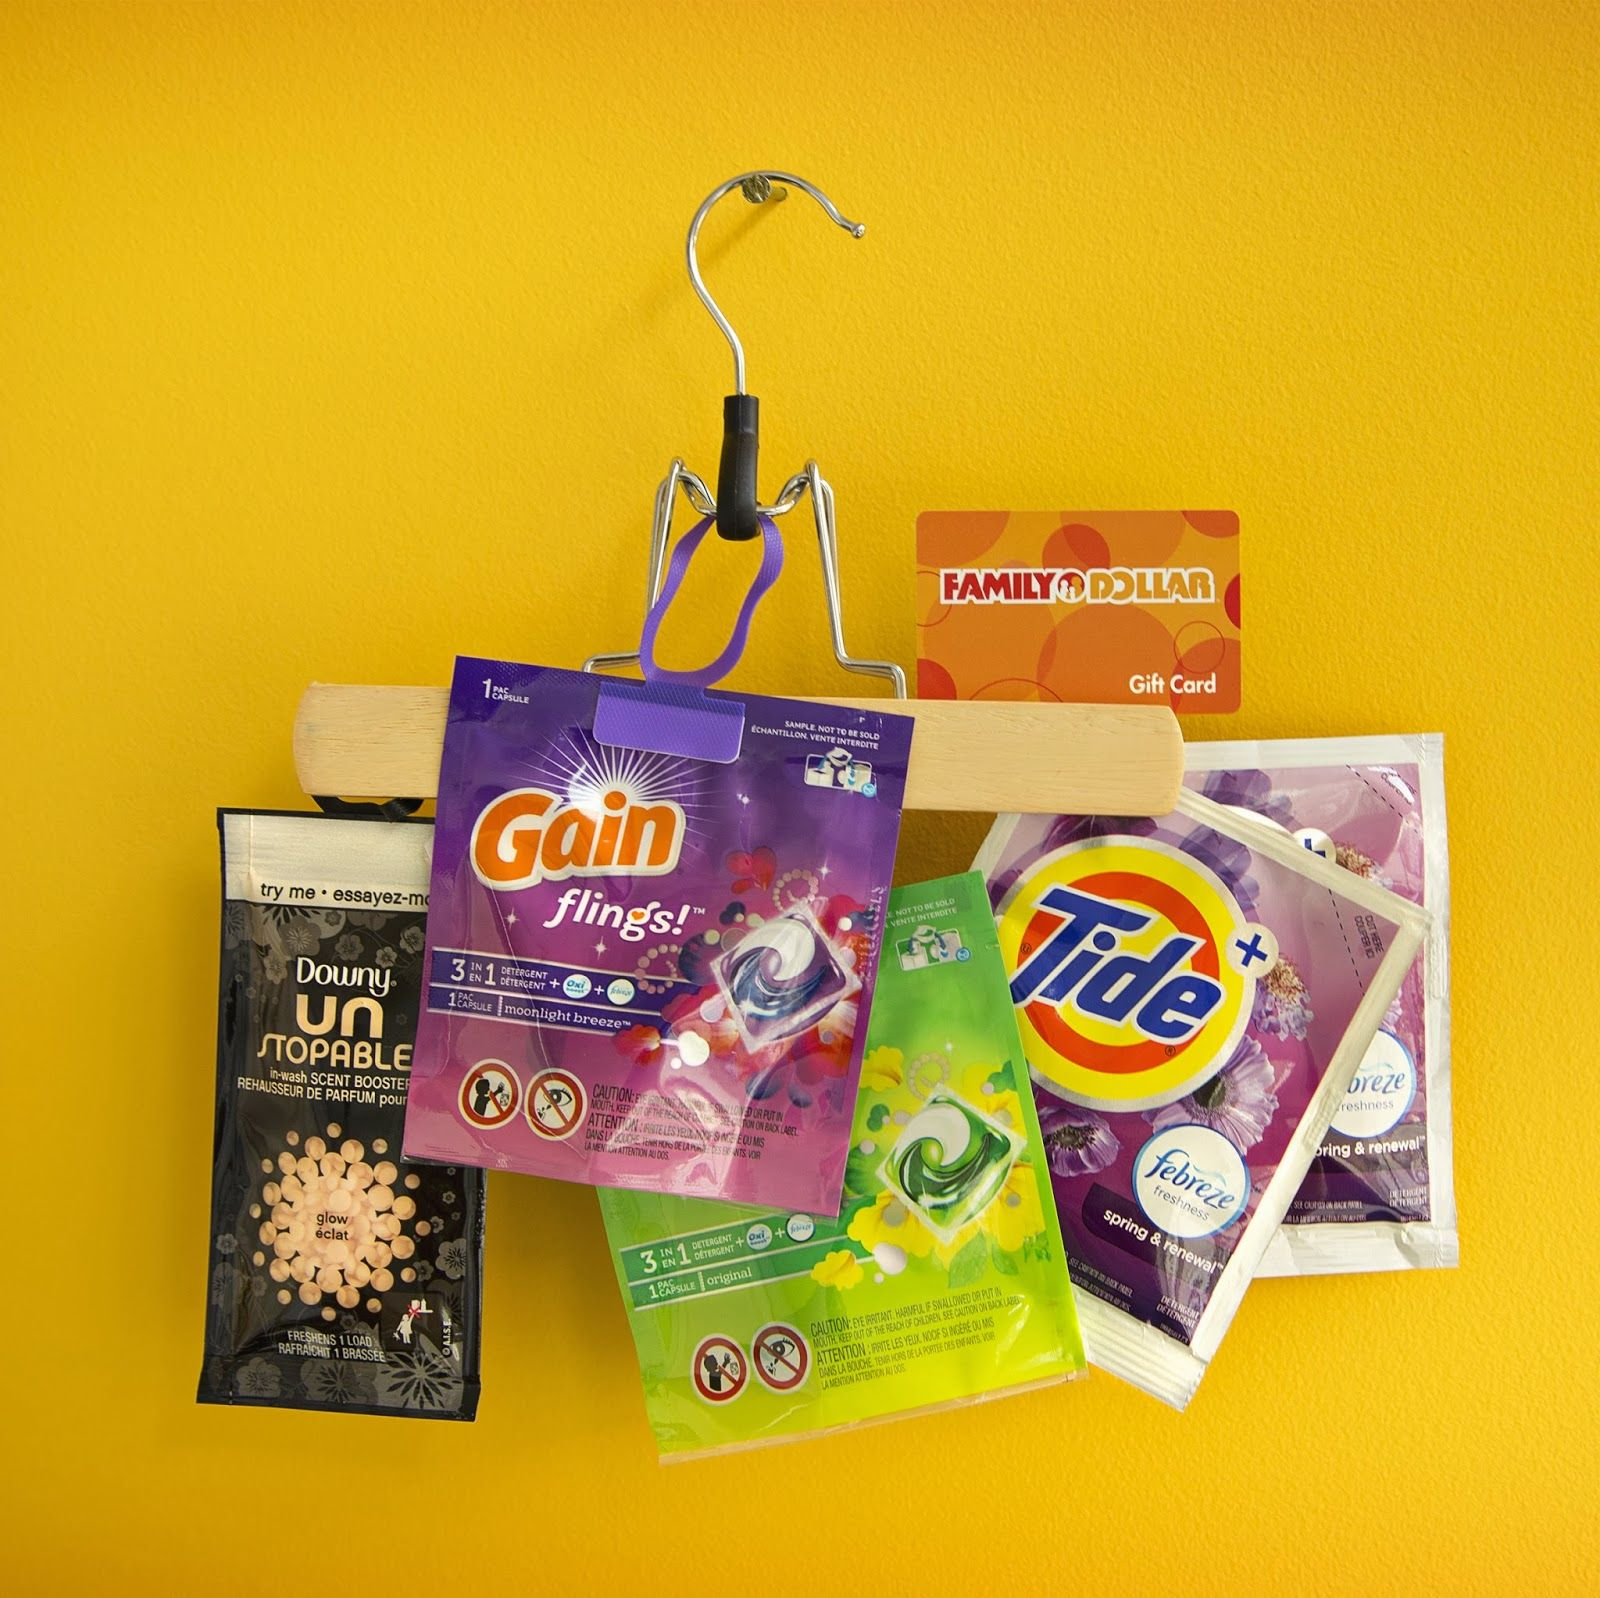 ***Giveaway*** Enter to win a Family Dollar Prize Pack